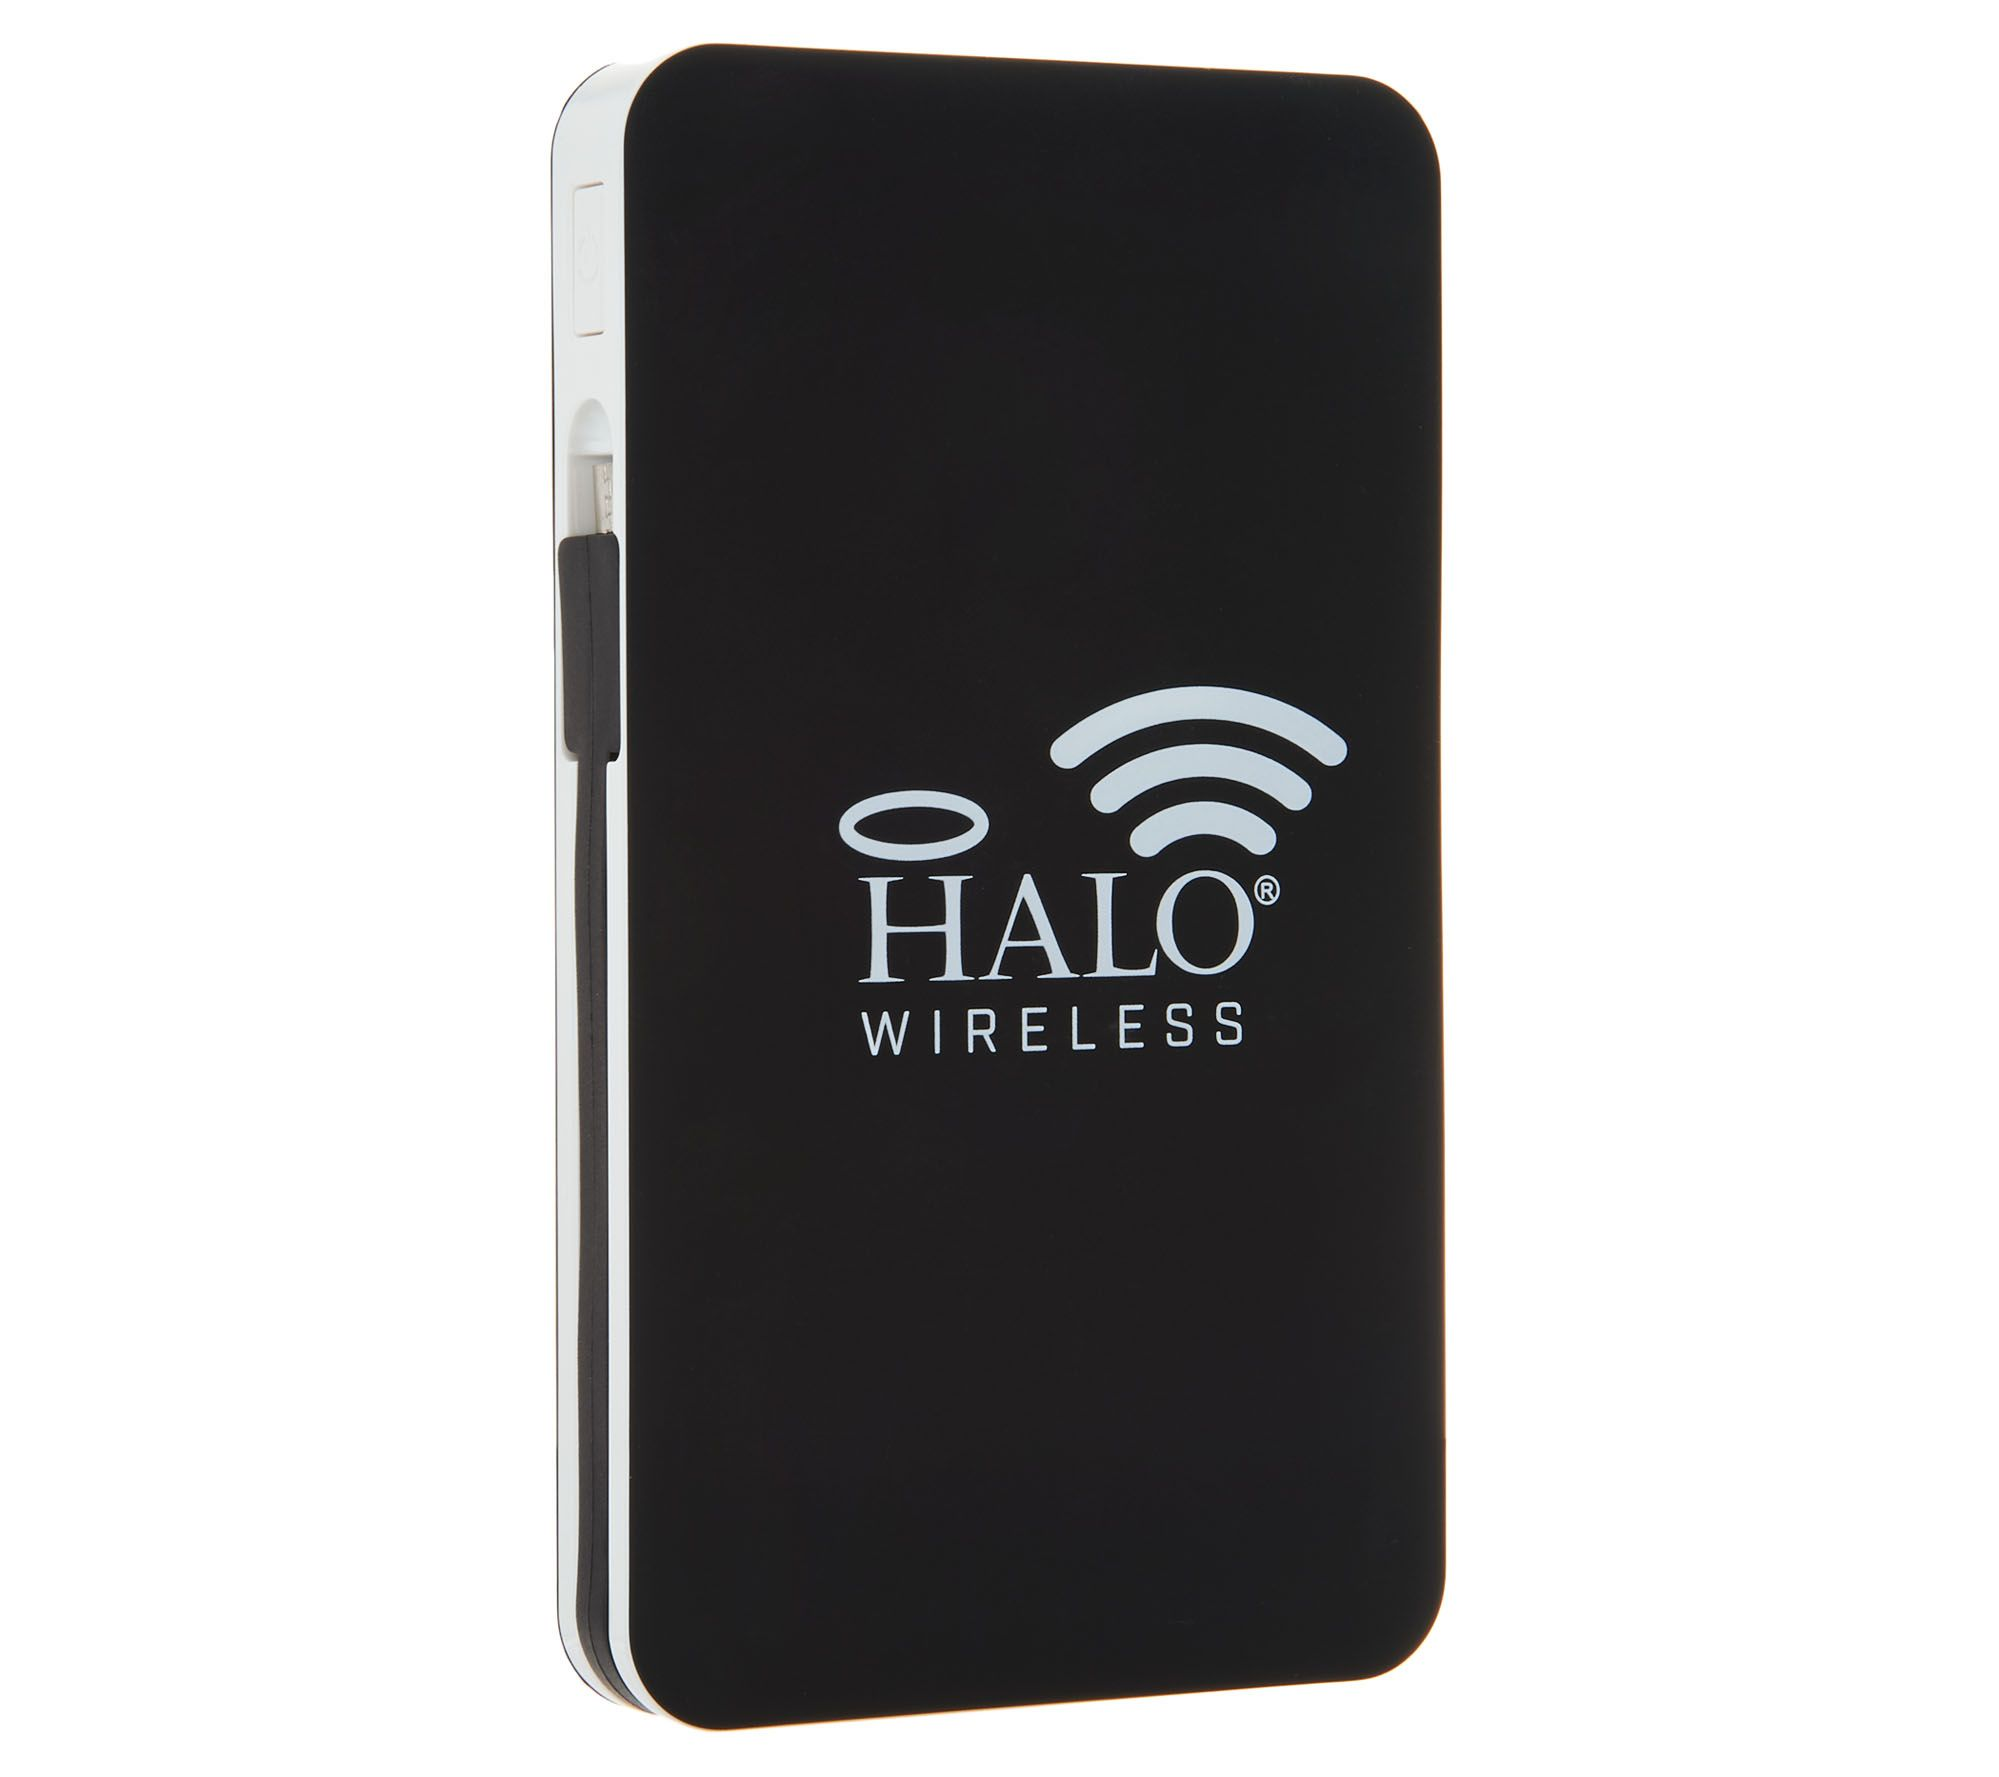 Halo portable power chargers battery chargers qvc halo 8000 wireless portable power charger with 2 usb ports e230053 greentooth Images